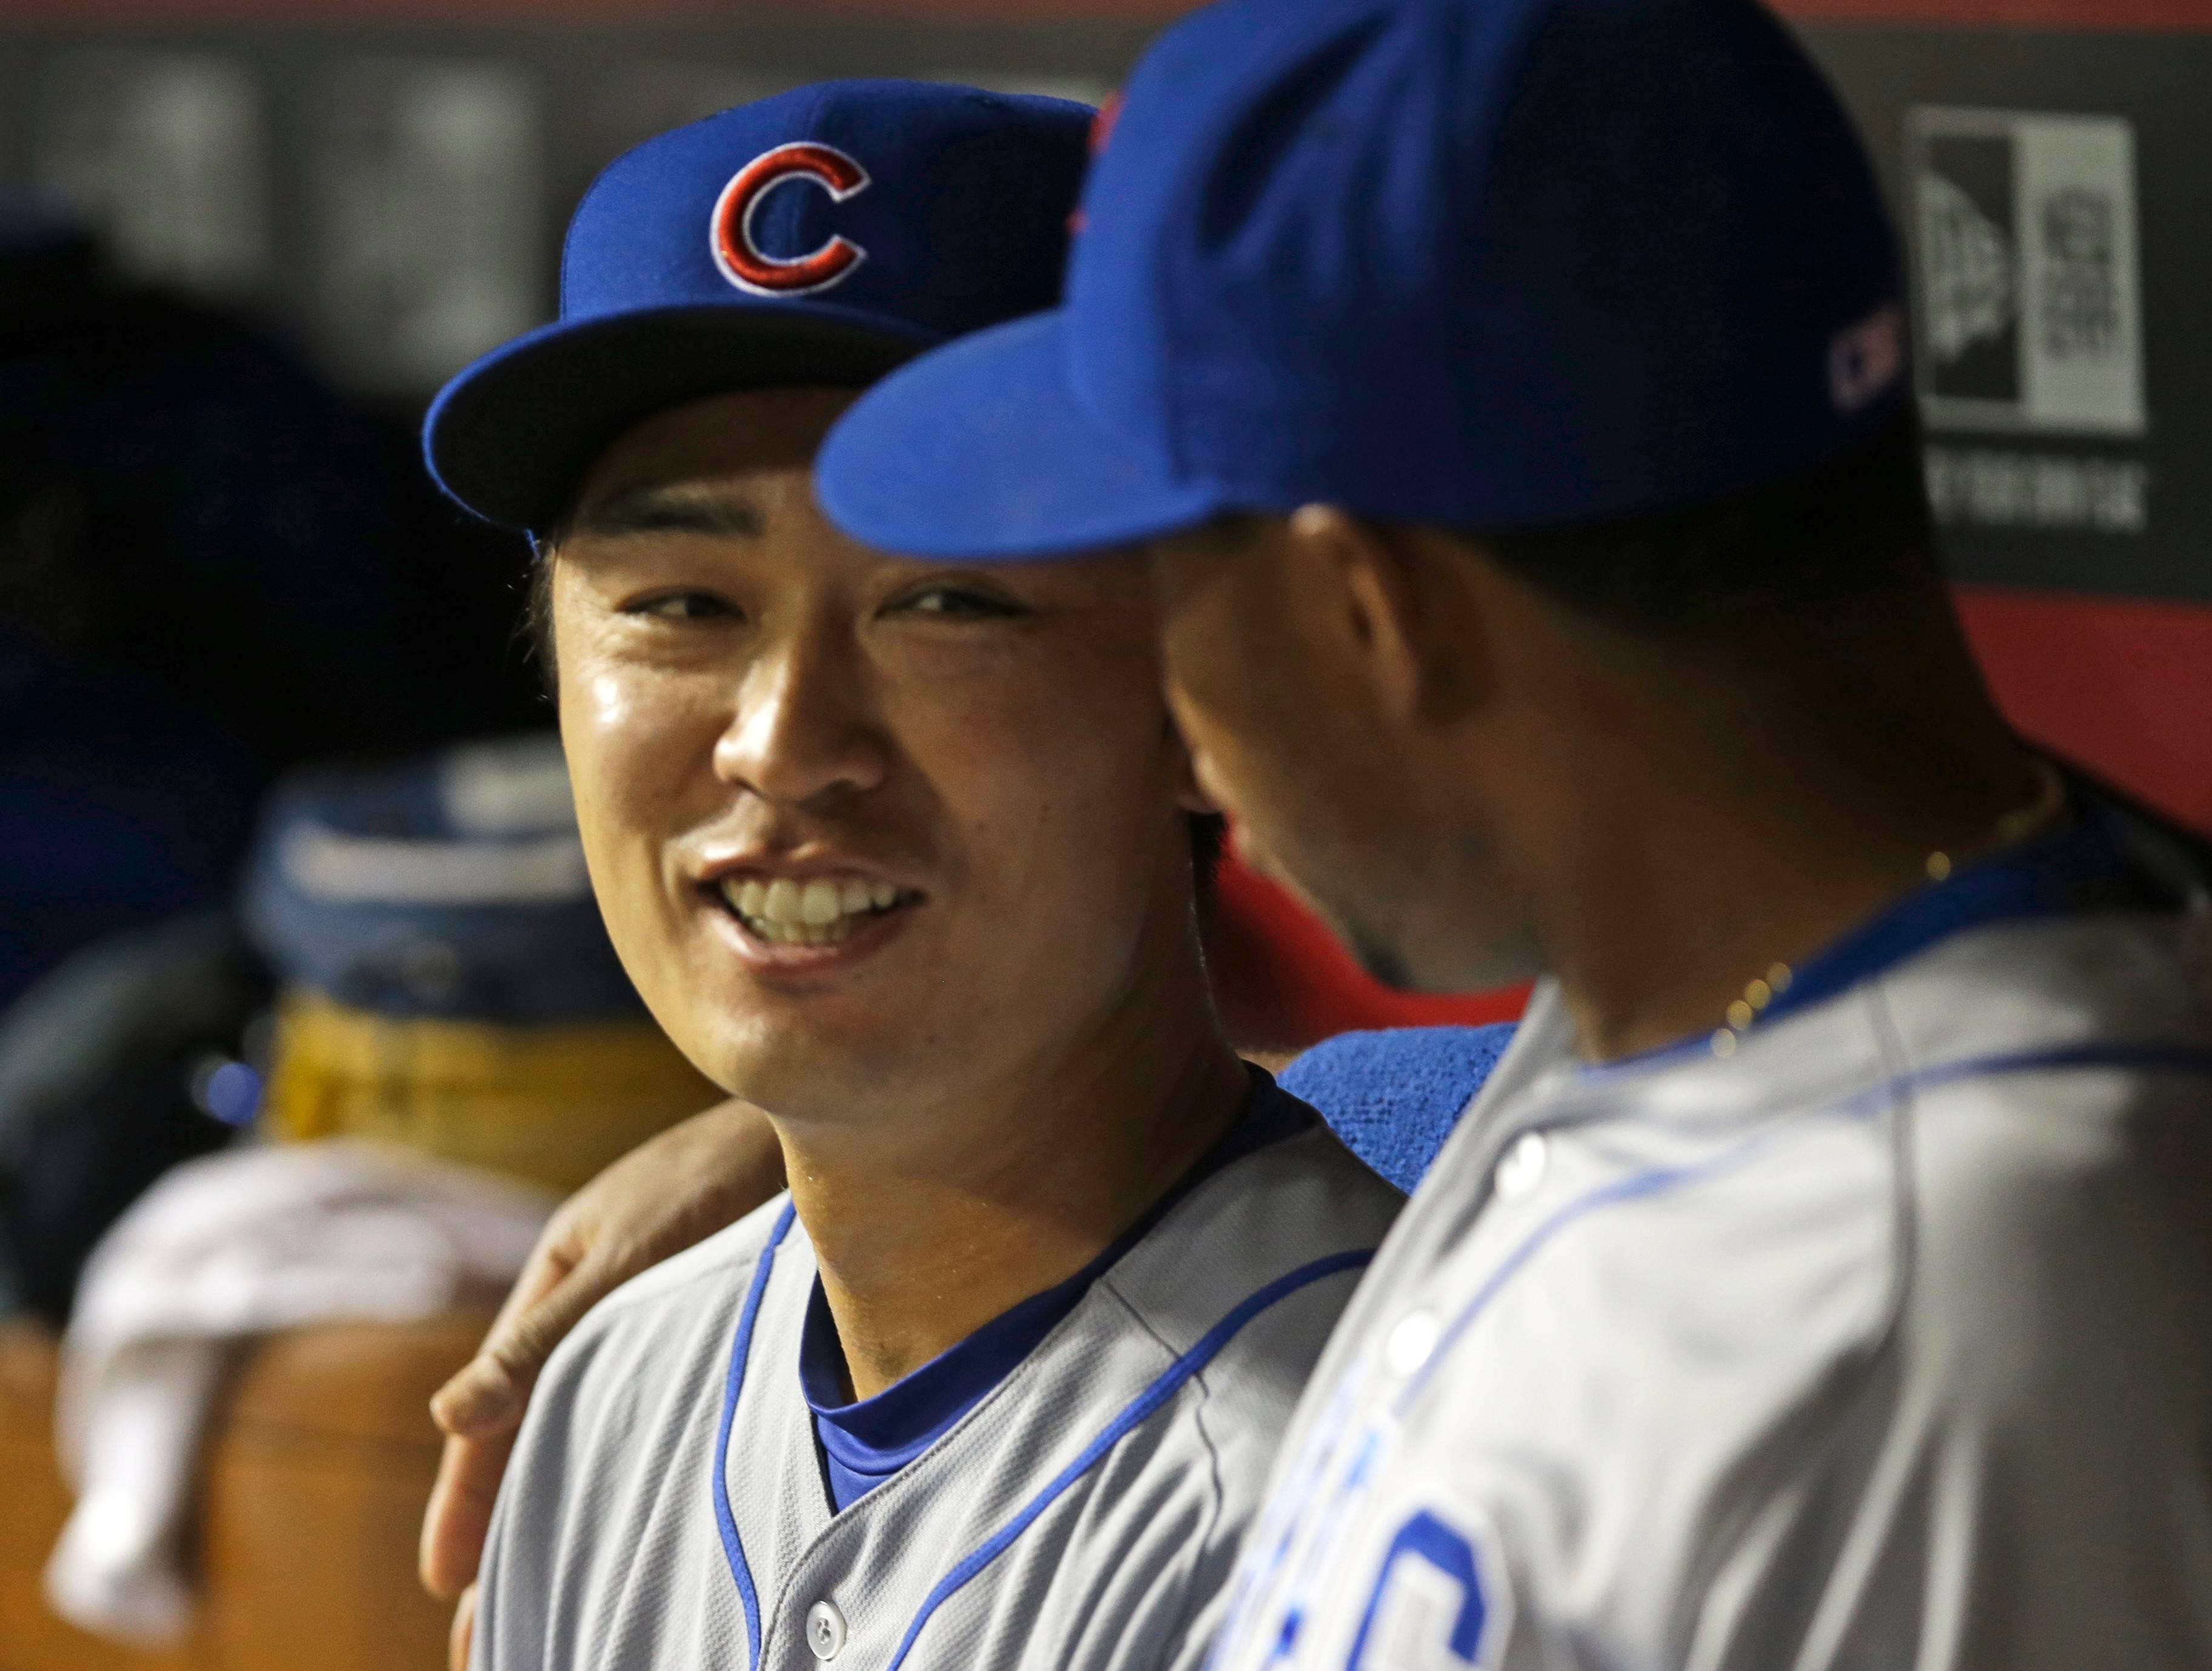 Cubs starting pitcher Tsuyoshi Wada, left, talks with Luis Valbuena in the dugout in the sixth inning of a baseball game against the Cincinnati Reds, Tuesday, July 8, 2014, in Cincinnati.